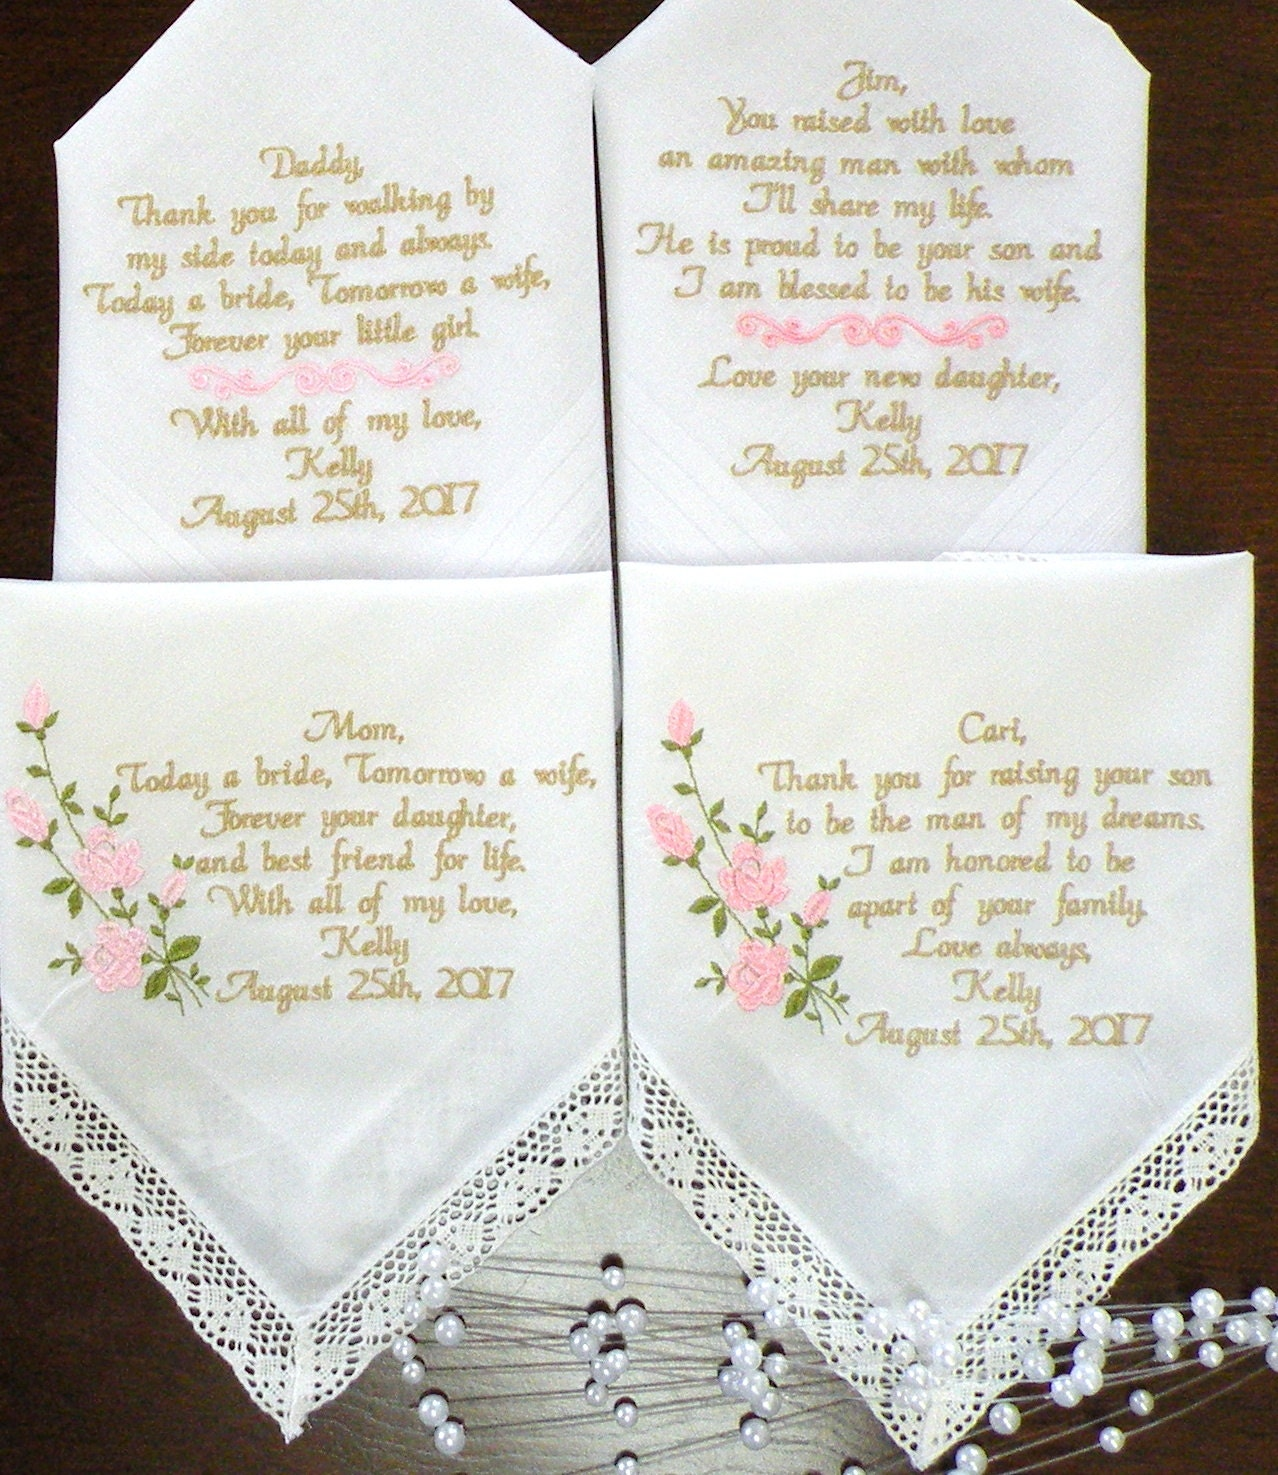 Wedding Handkerchiefs For The Family: Embroidered Wedding Handkerchiefs Wedding Day Gifts Mother